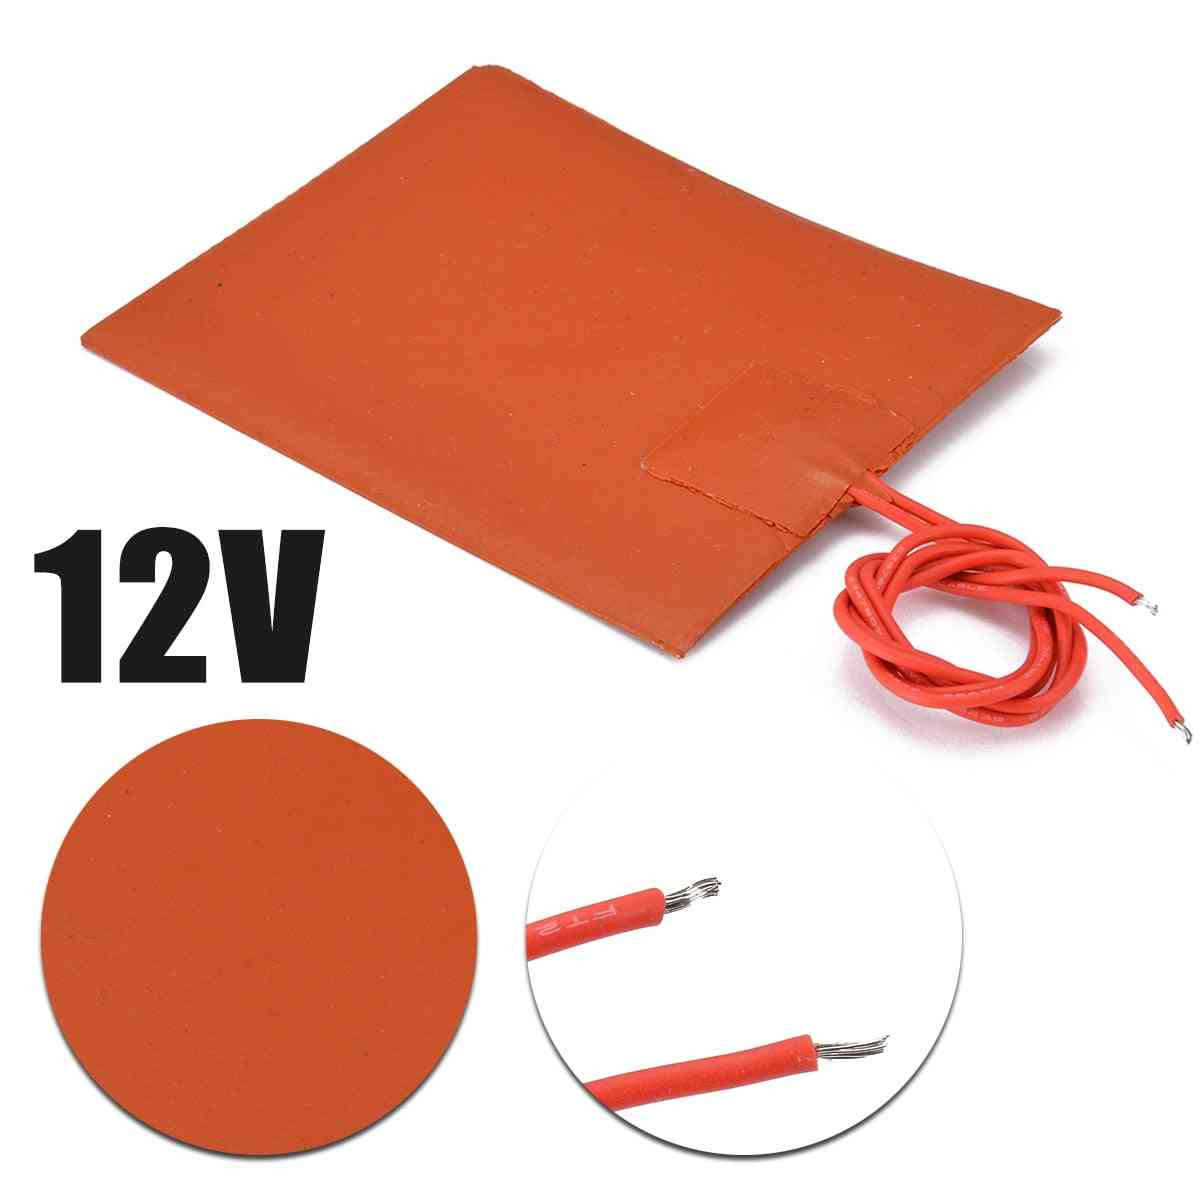 12v Dc 20w Flexible Waterproof Silicon Heater Pad For 3d Printer Heat Bed Electric Pads Red